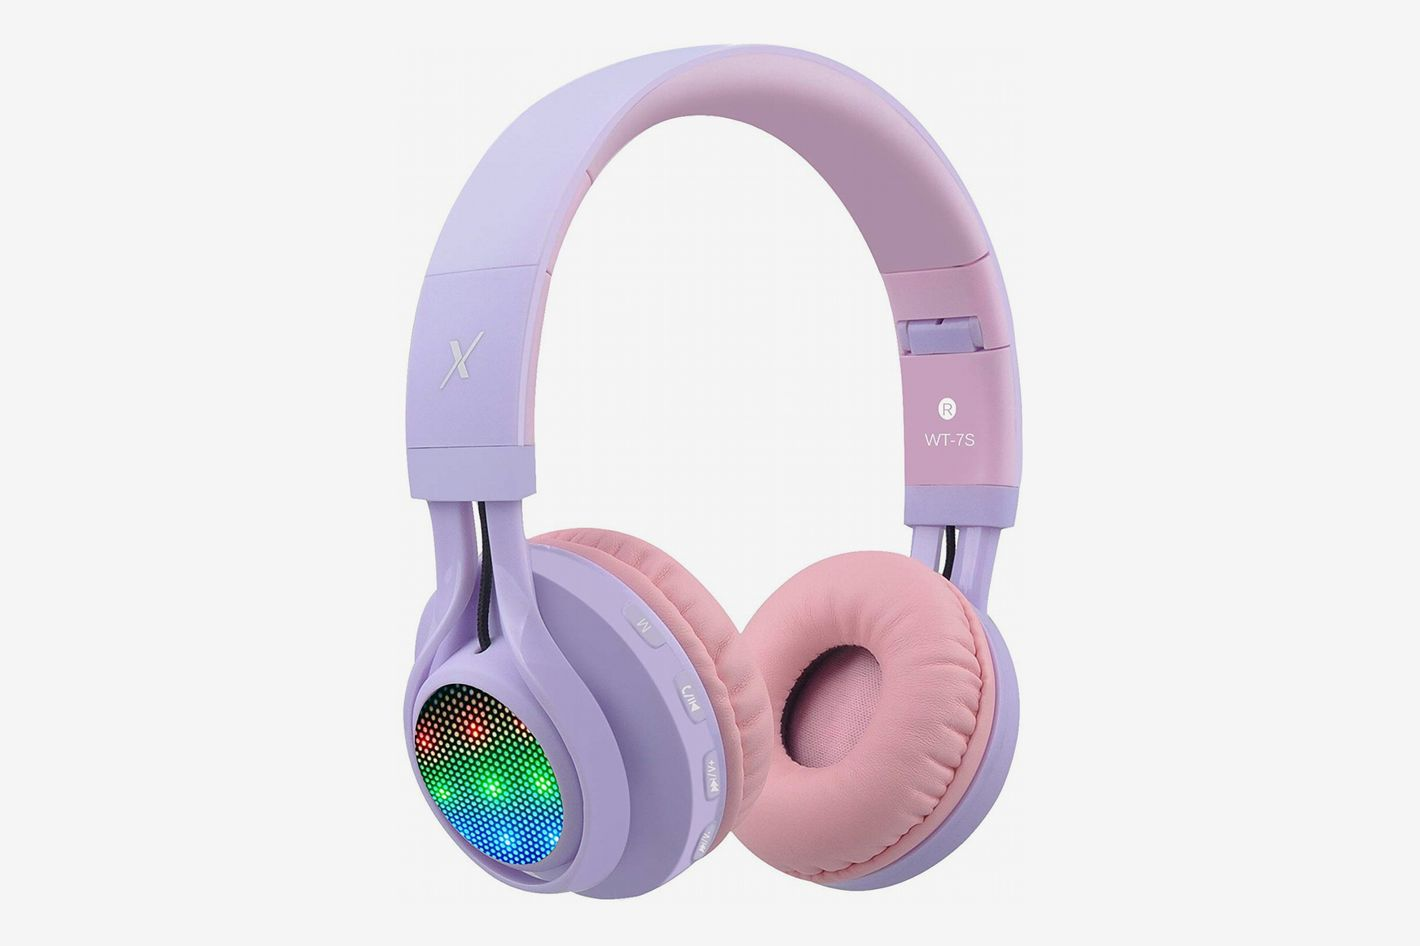 Riwbox WT-7S Light- Up Bluetooth Headphones